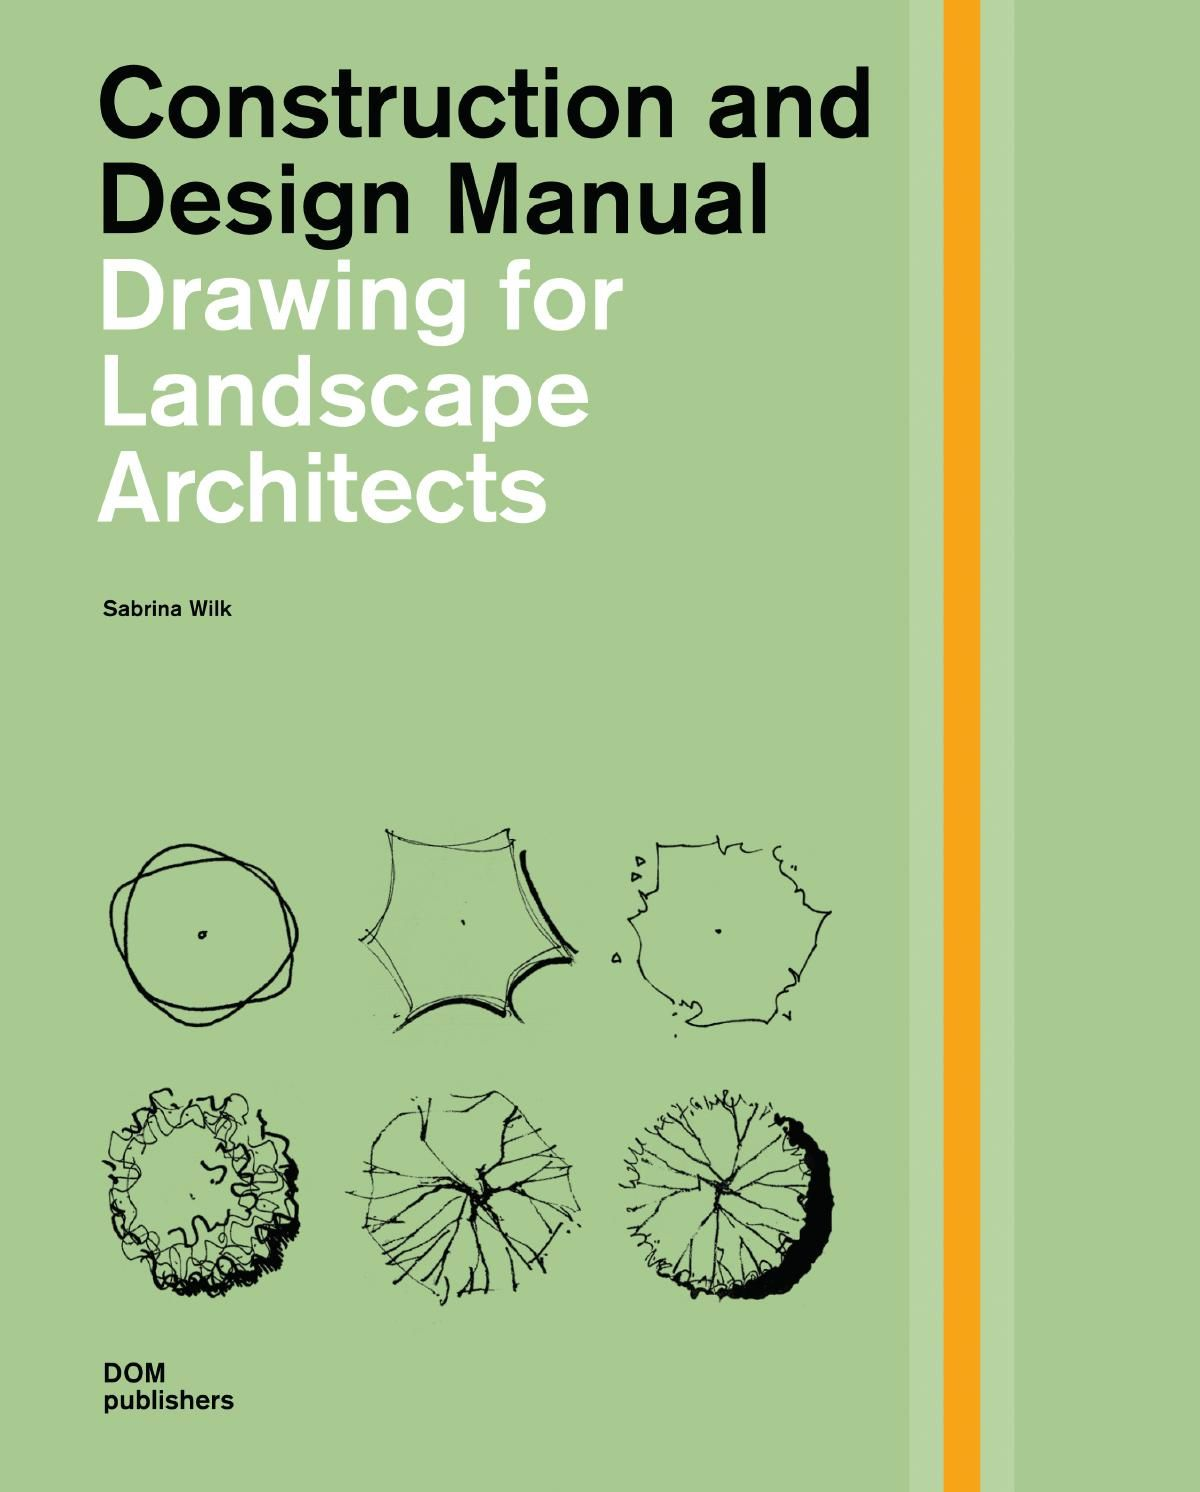 construction and design manual drawing for landscape architects download